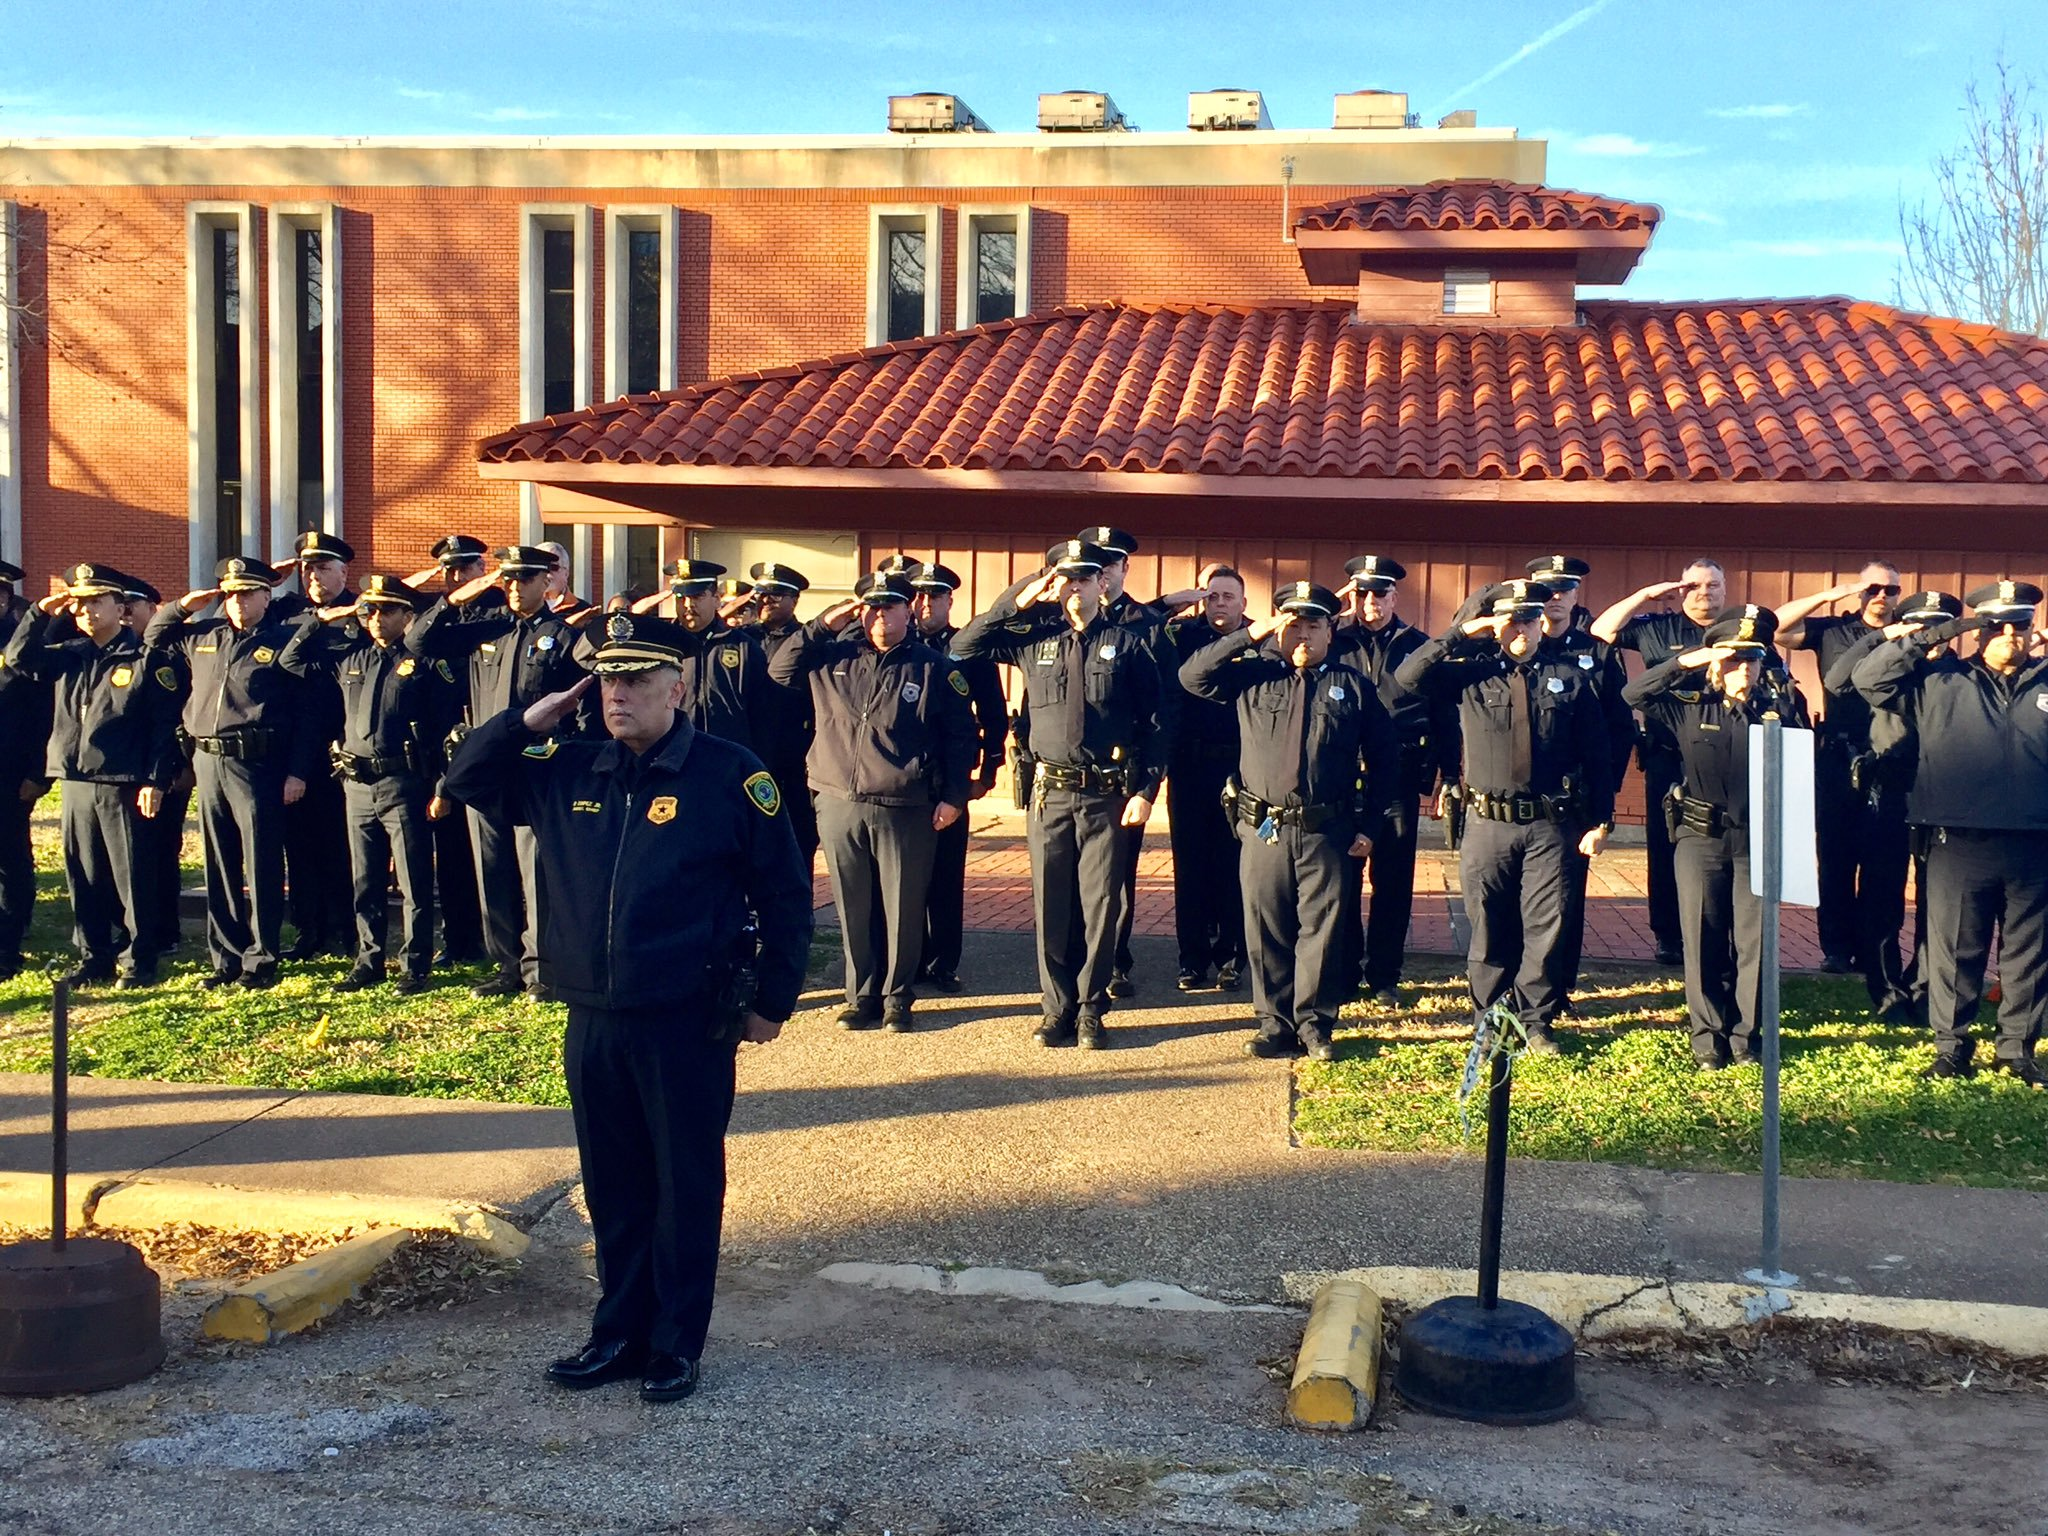 Officer salute outside the prison during the execution of Robert Jennings.